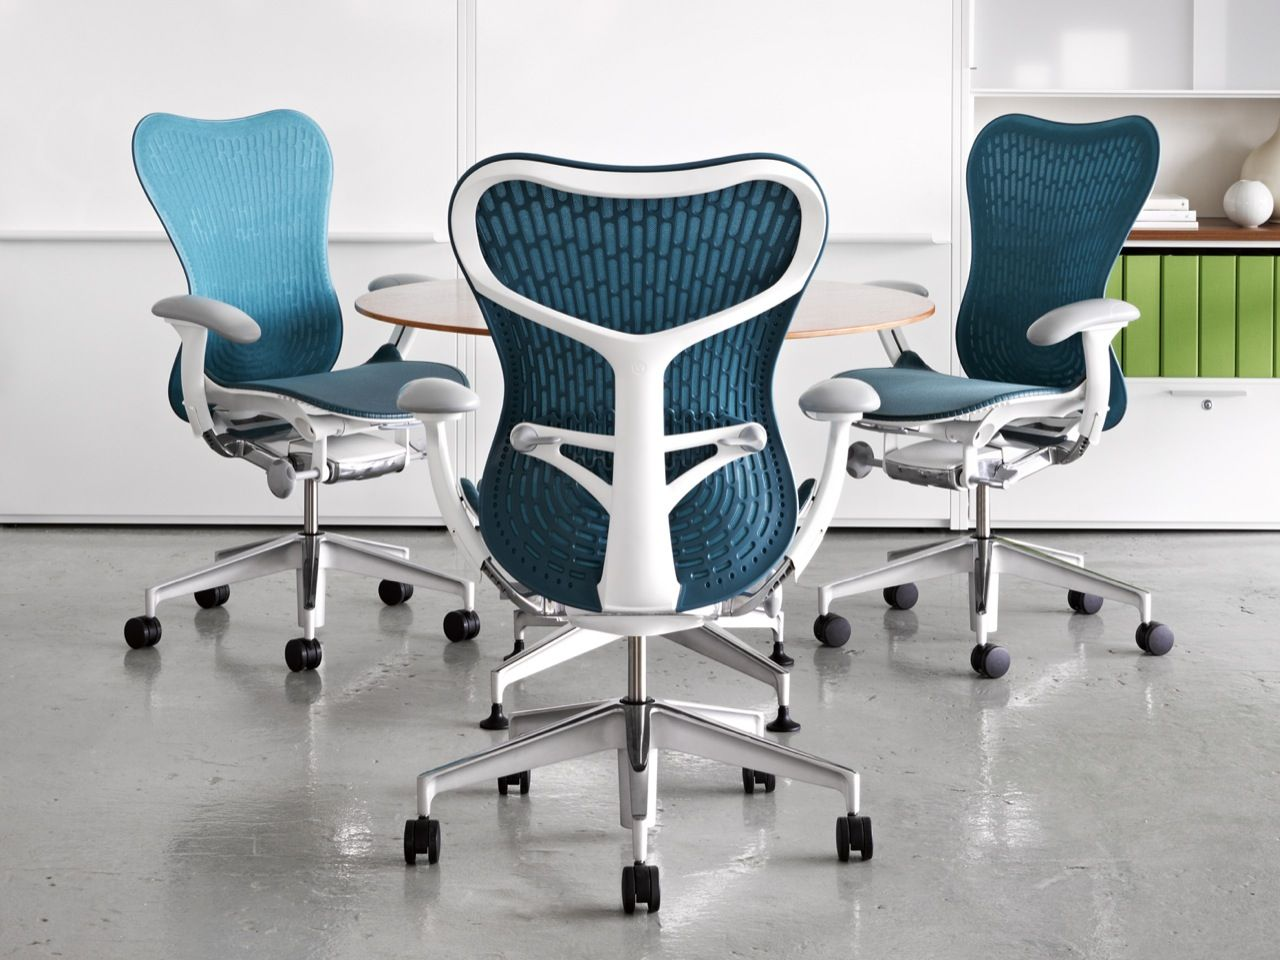 Mirra 2 Task chairs designed by Studio 7.5 for Herman Miller ...